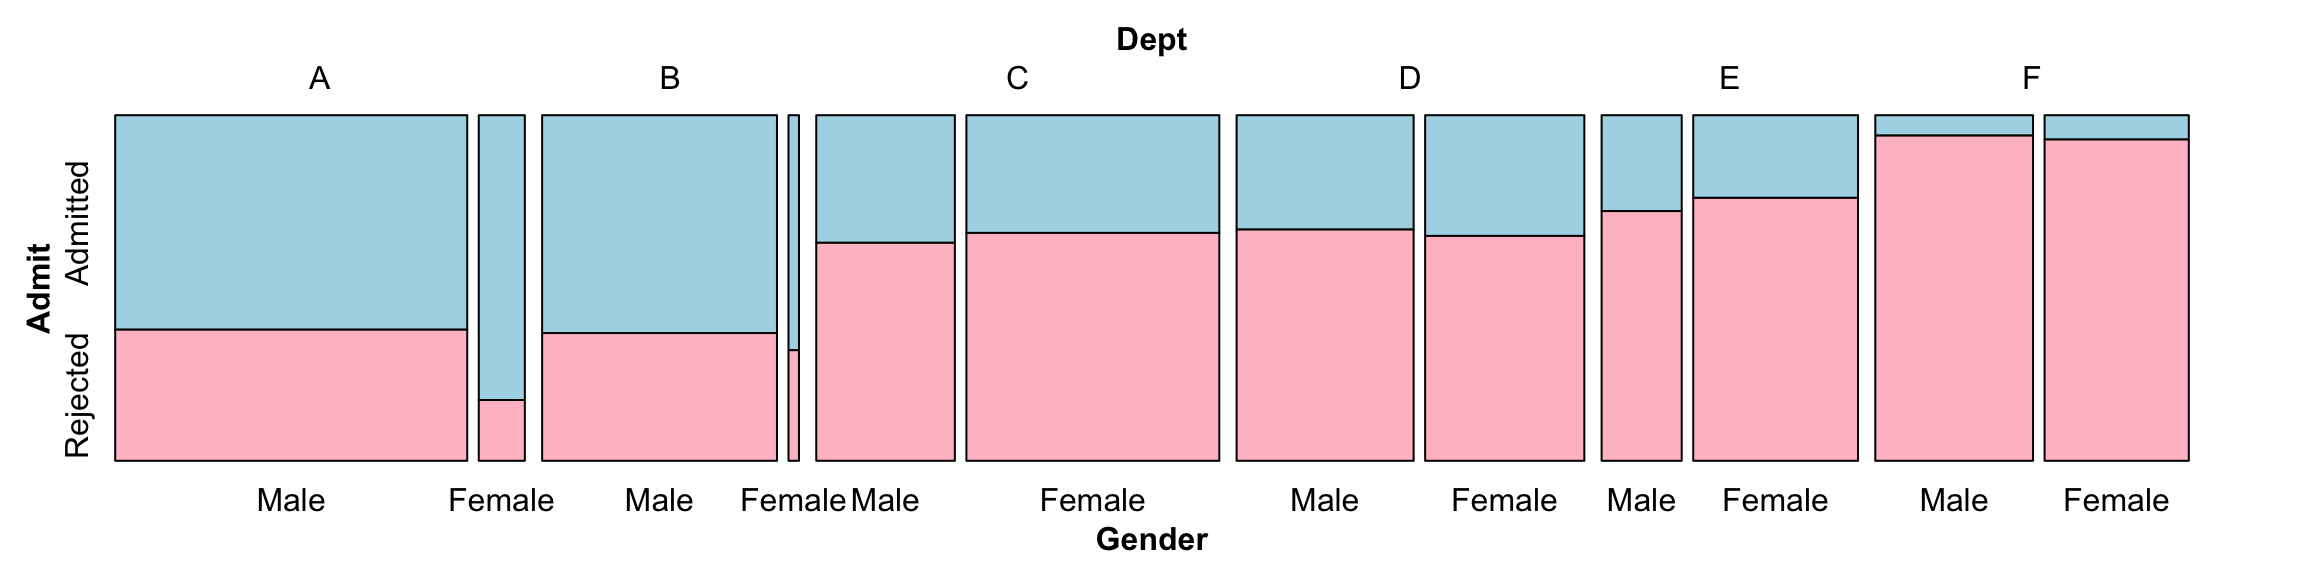 Splitting Dept vertically, Gender vertically, and Admit horizontally